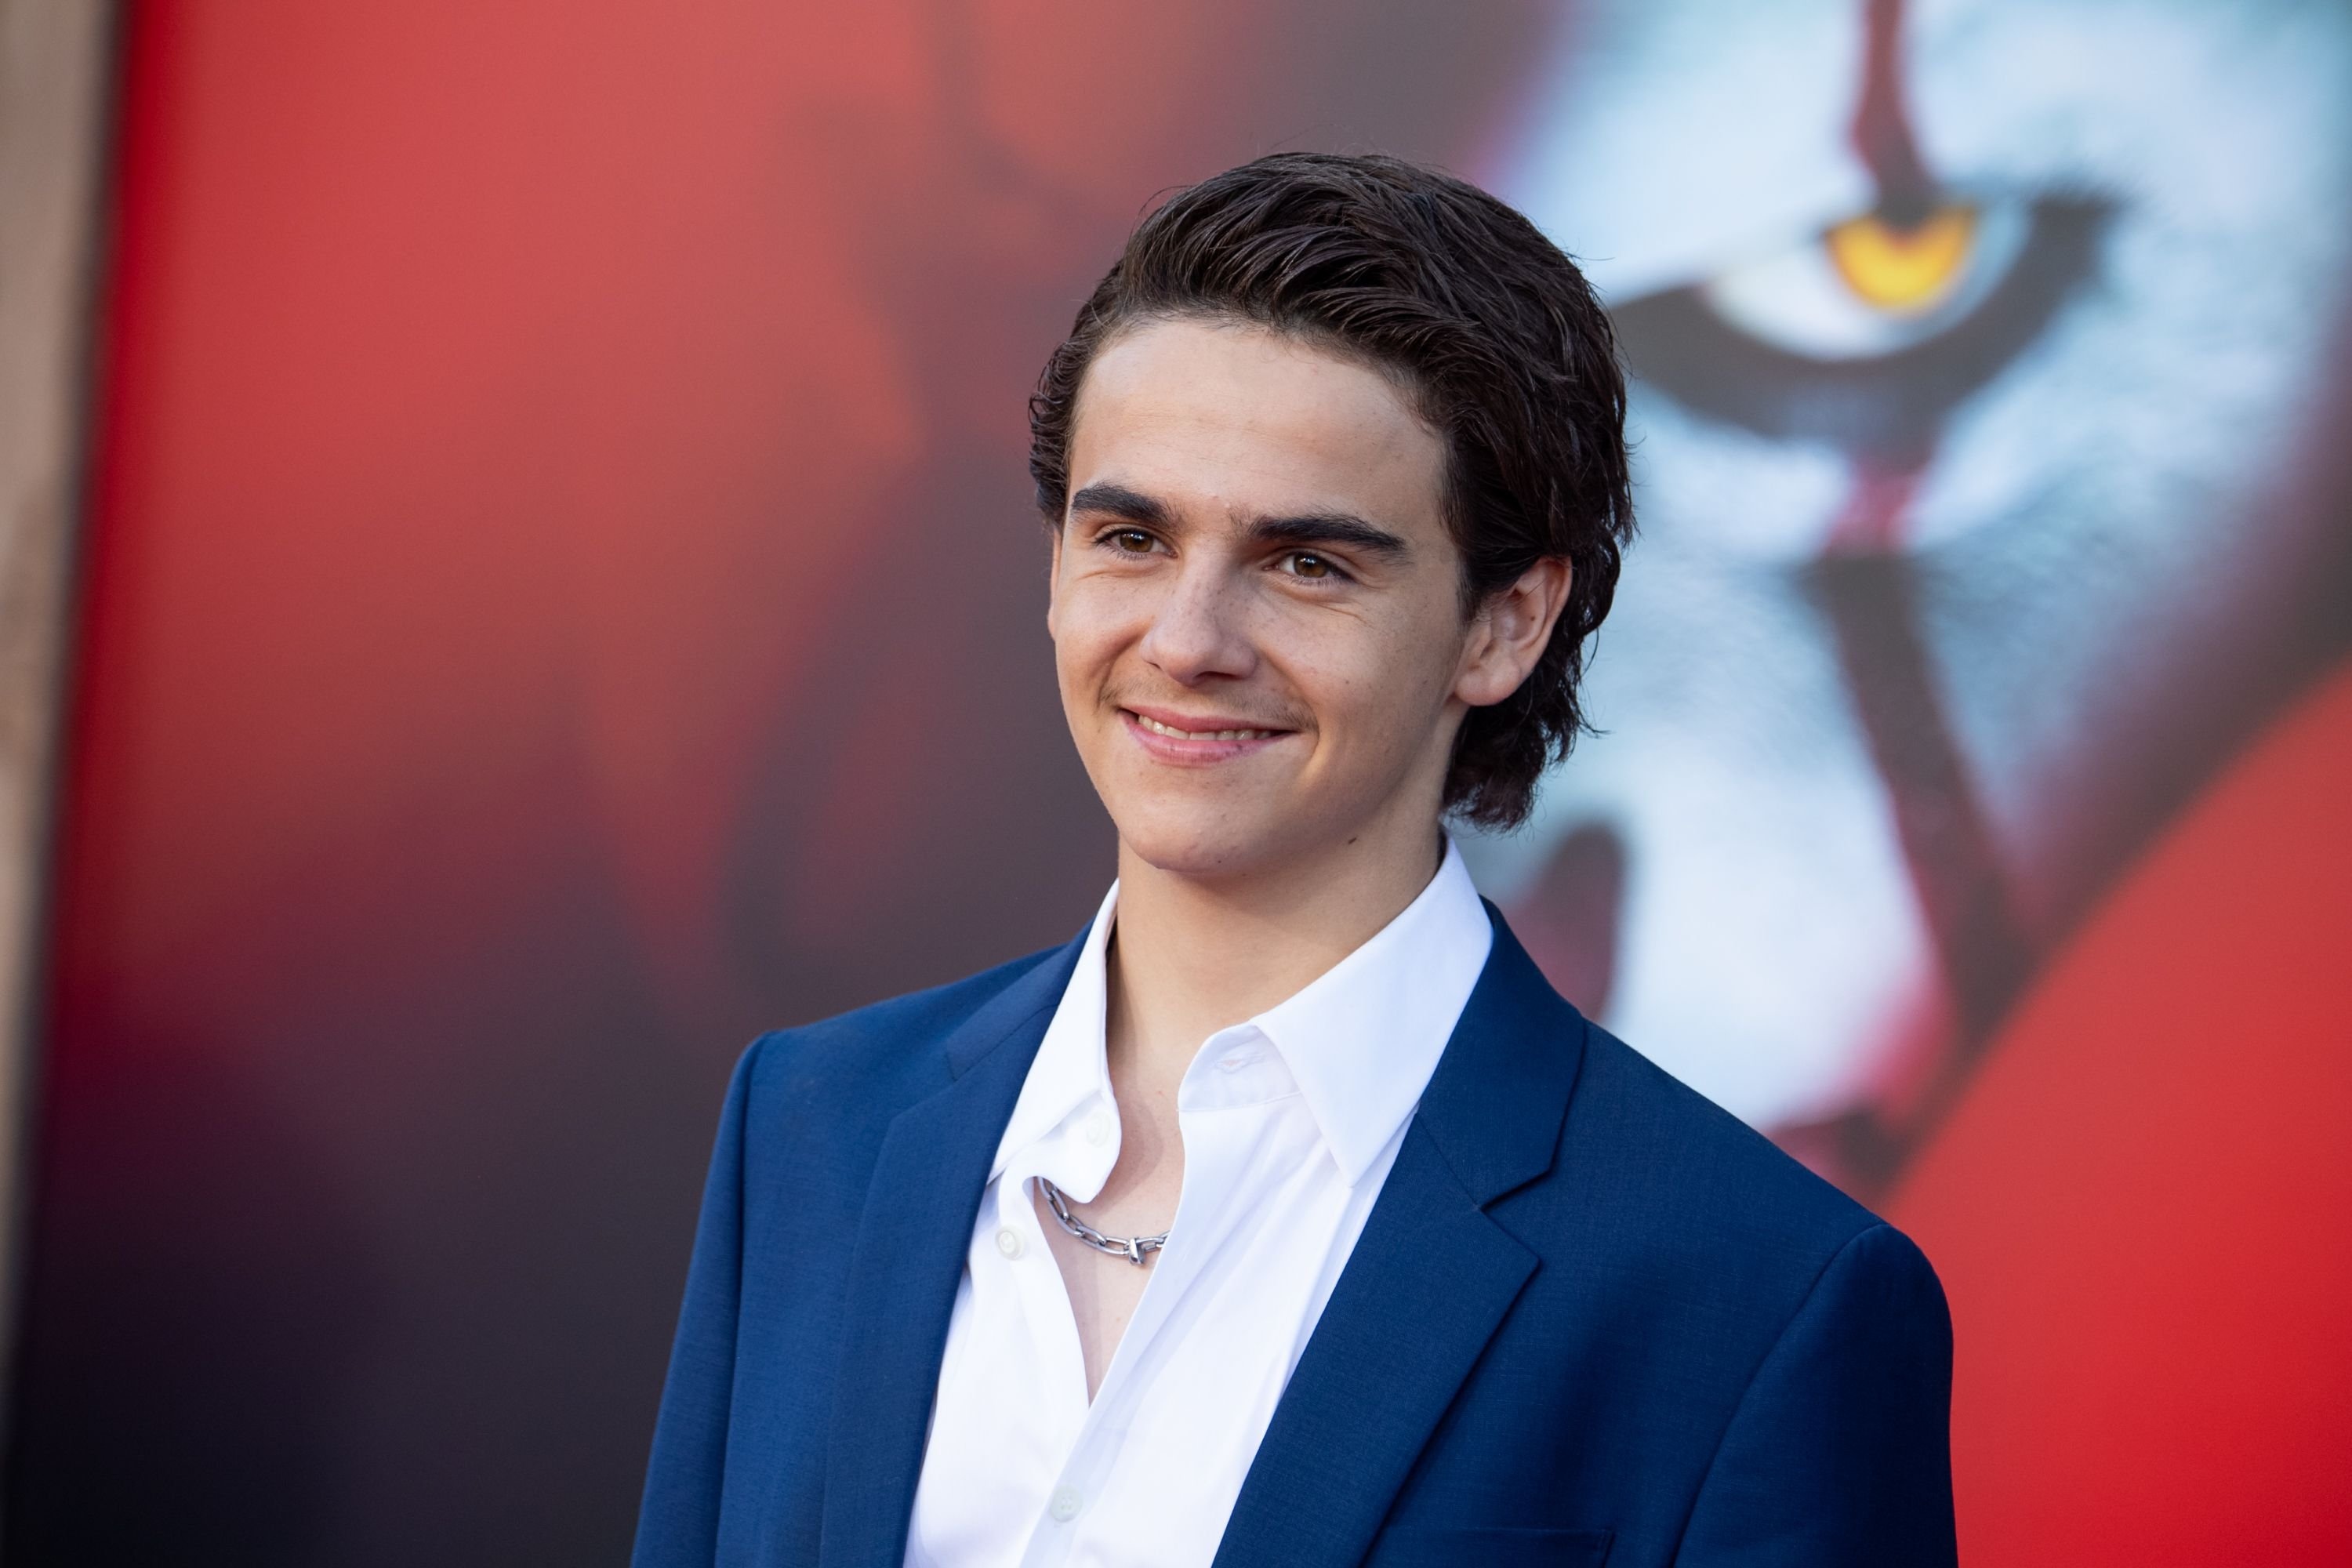 """Jack Dylan Grazer at the premiere of """"It Chapter Two"""" in August 2019 in Westwood, California 